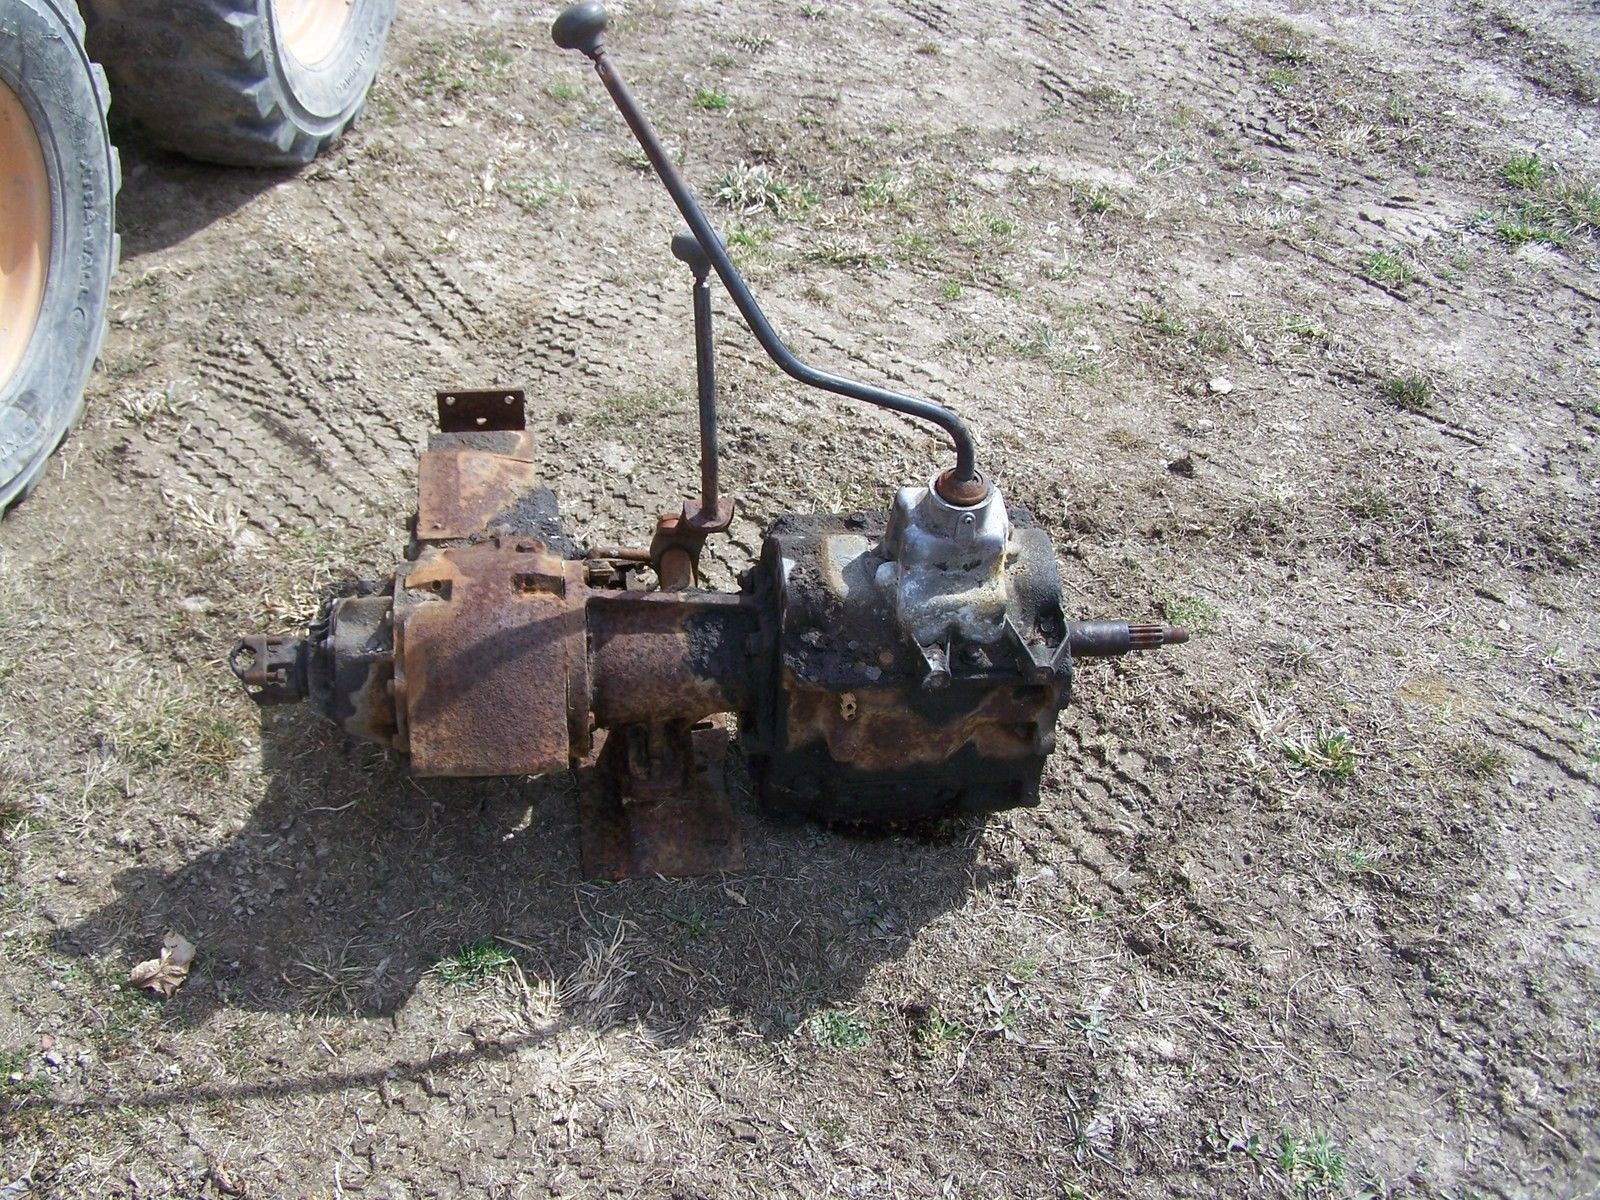 73-79 F100/F350 steering and misc parts - Ford Truck ...